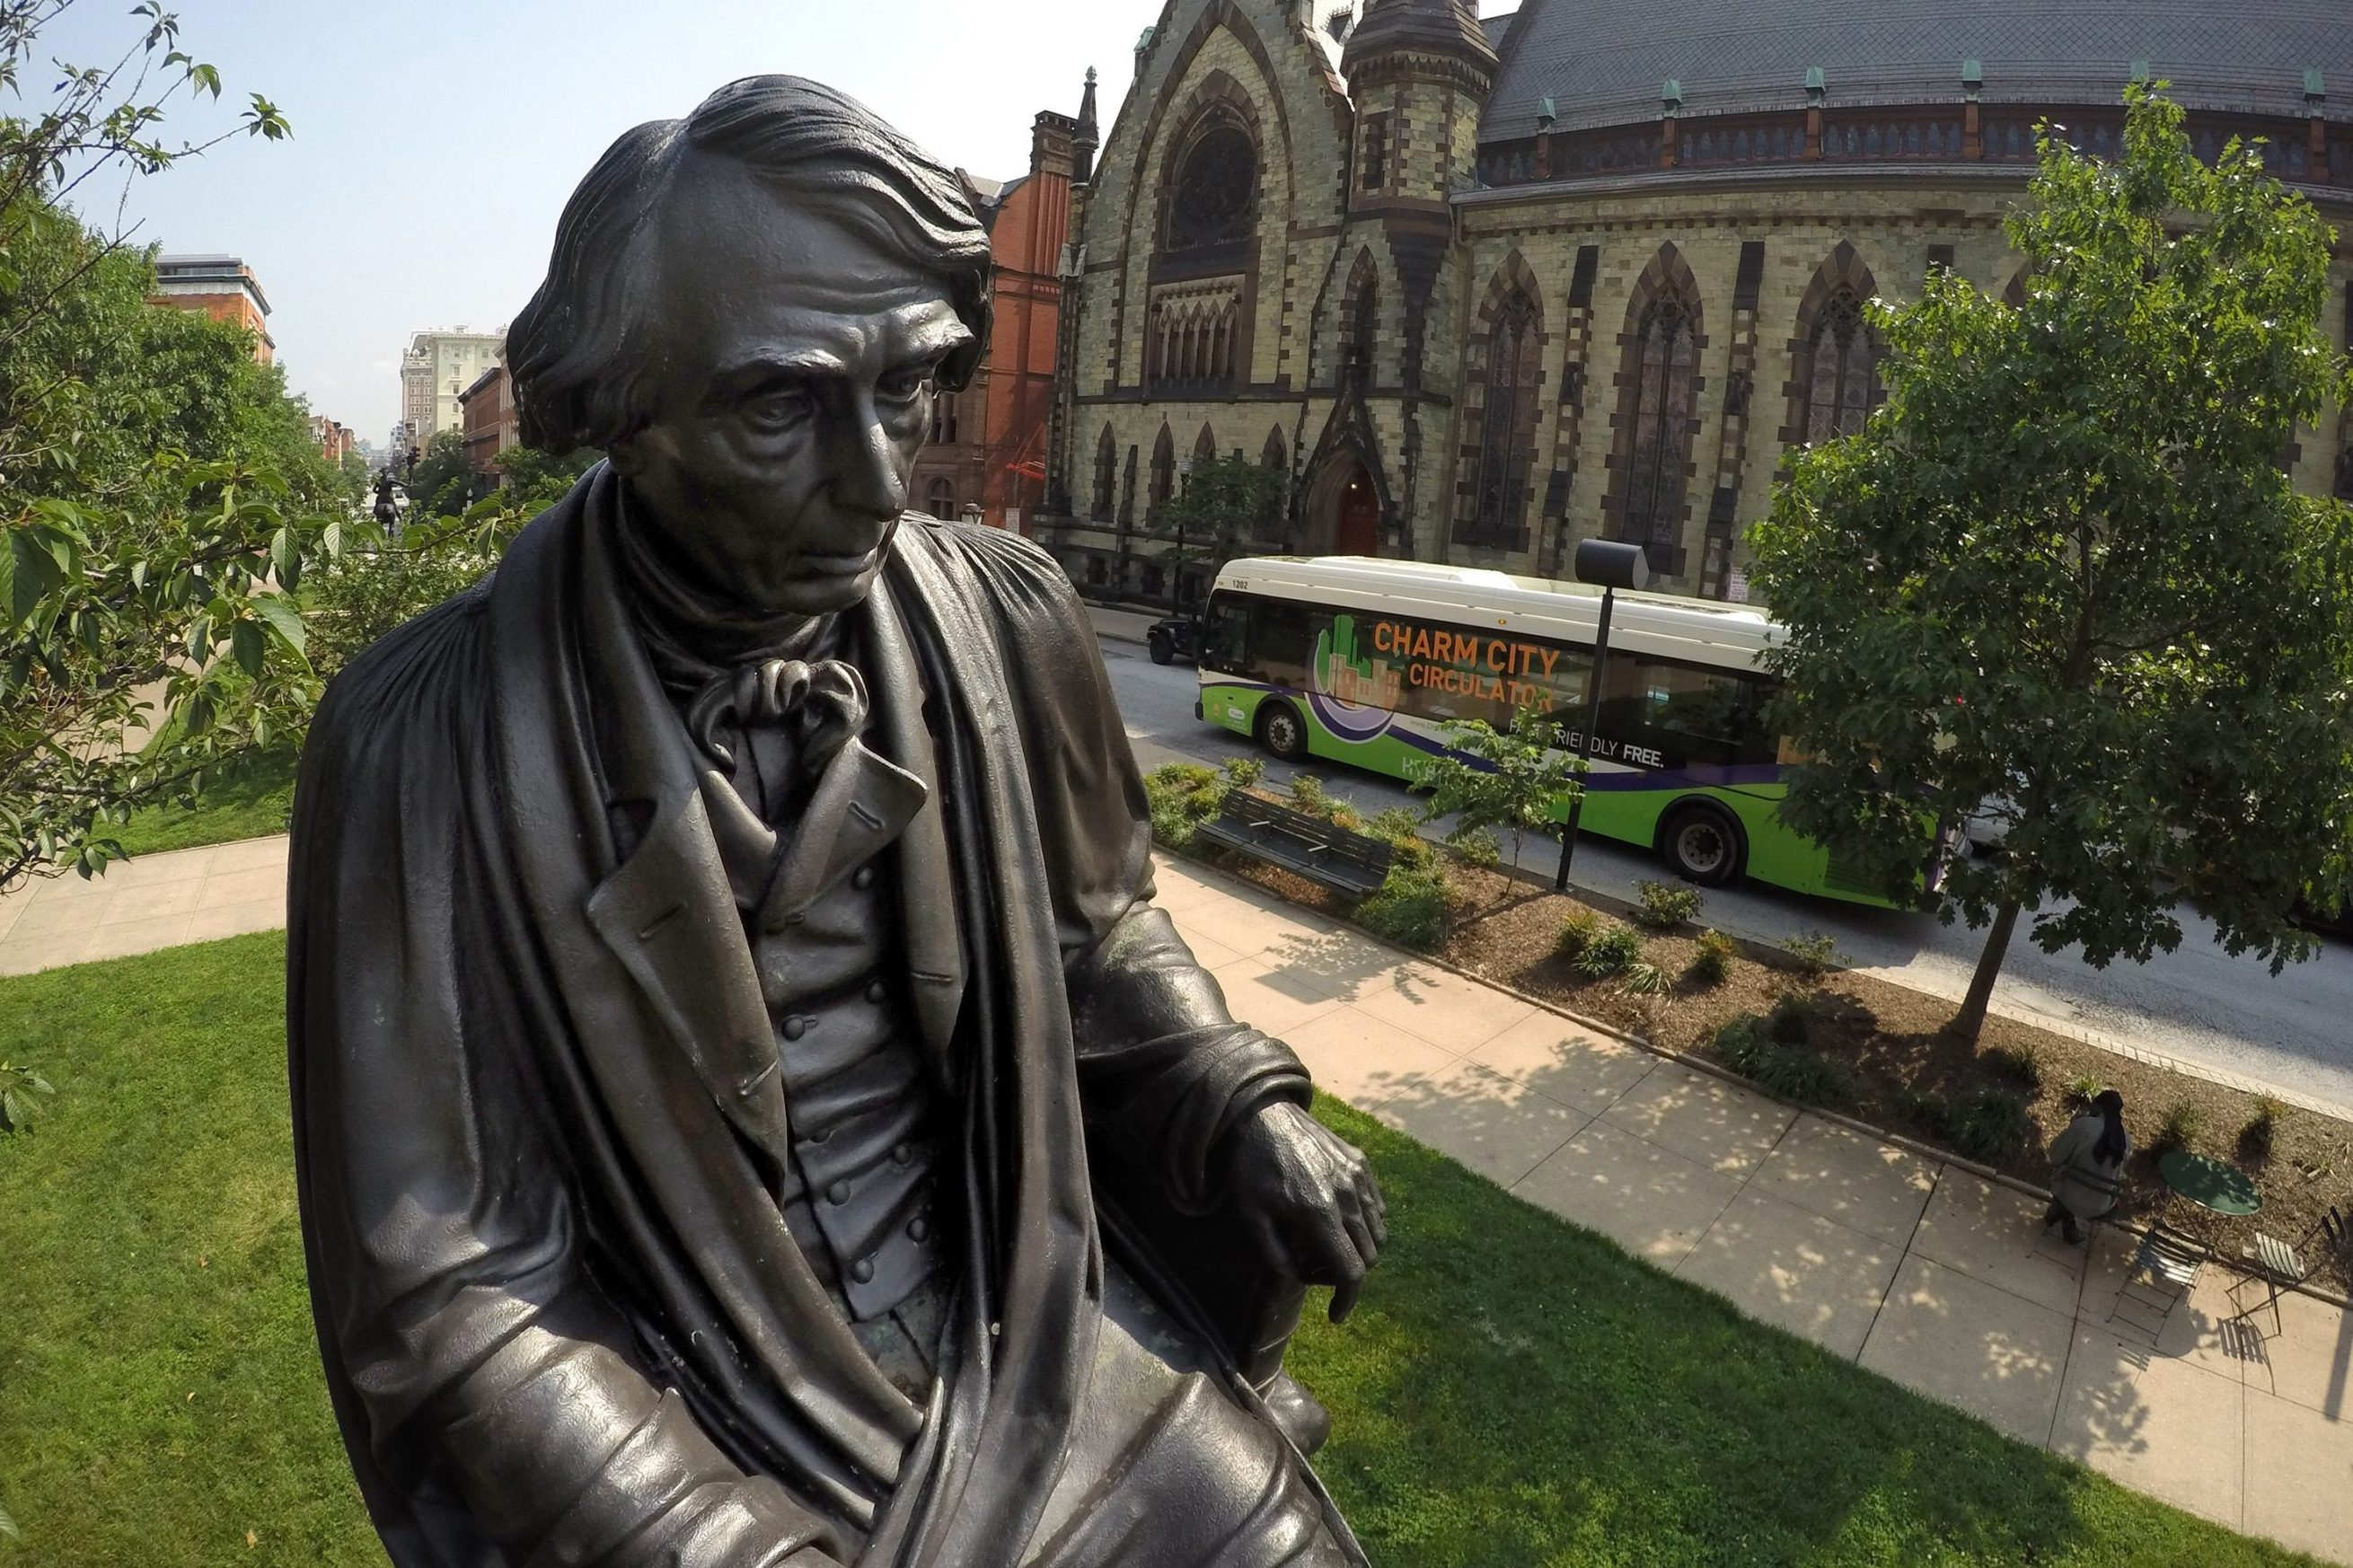 A statue of Roger Brooke Taney, the fifth Chief Justice of the U.S. Supreme Court, is seated facing the Washington Monument in Mount Vernon in this file image from 2015. (Jerry Jackson/Baltimore Sun/TNS)